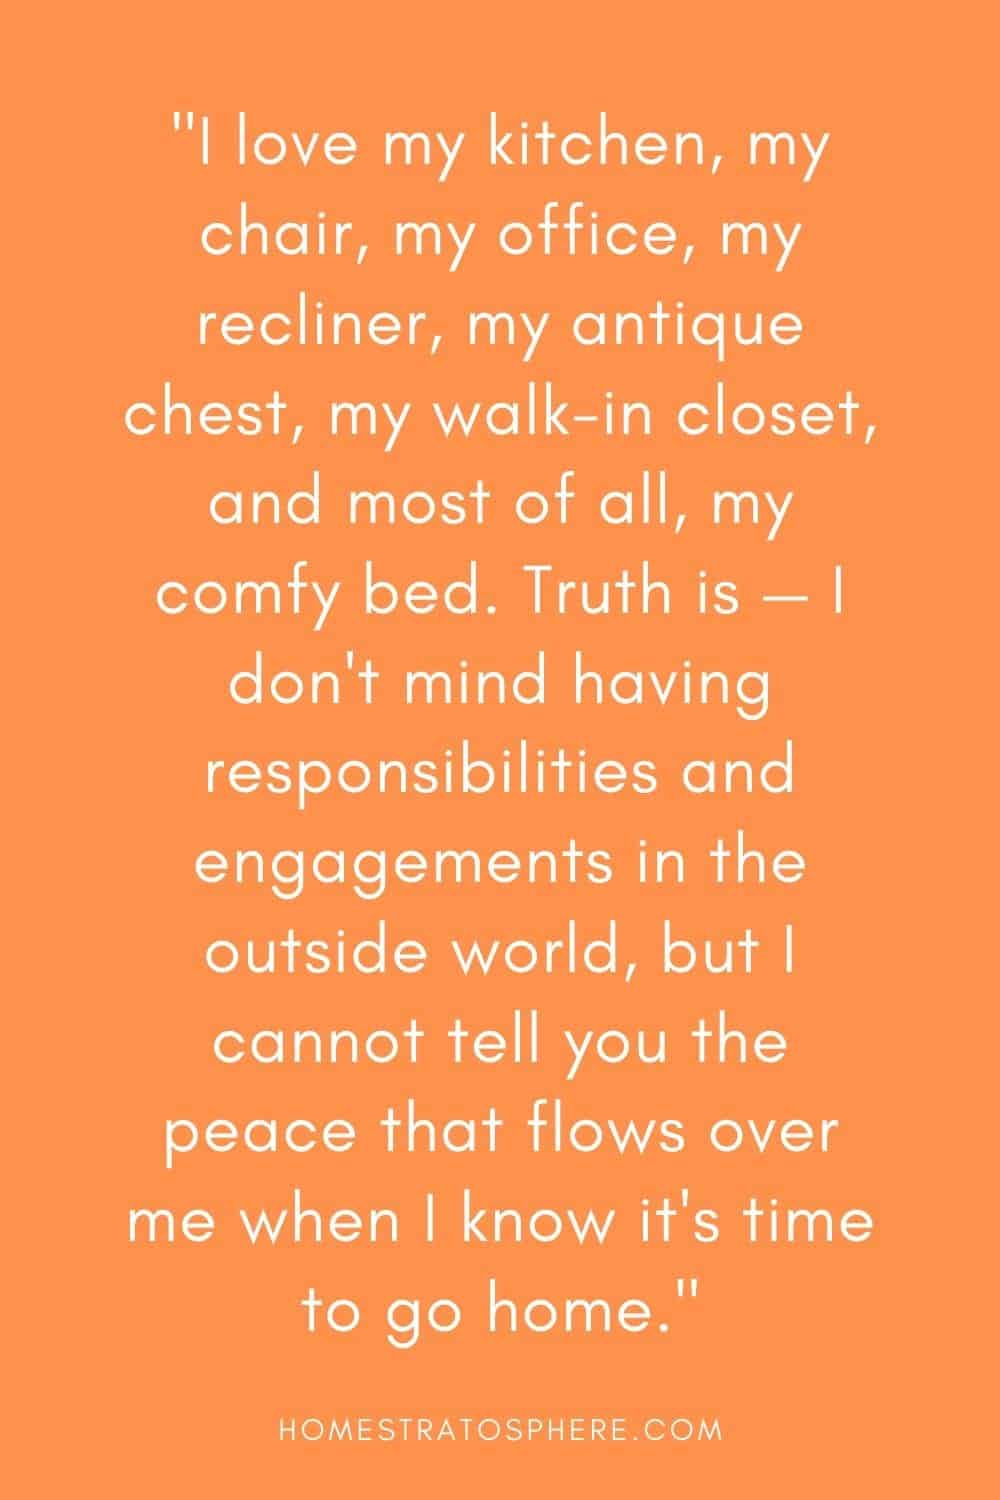 """""""I love my kitchen, my chair, my office, my recliner, my antique chest, my walk-in closet, and most of all, my comfy bed. Truth is — I don't mind having responsibilities and engagements in the outside world, but I cannot tell you the peace that flows over me when I know it's time to go home."""""""